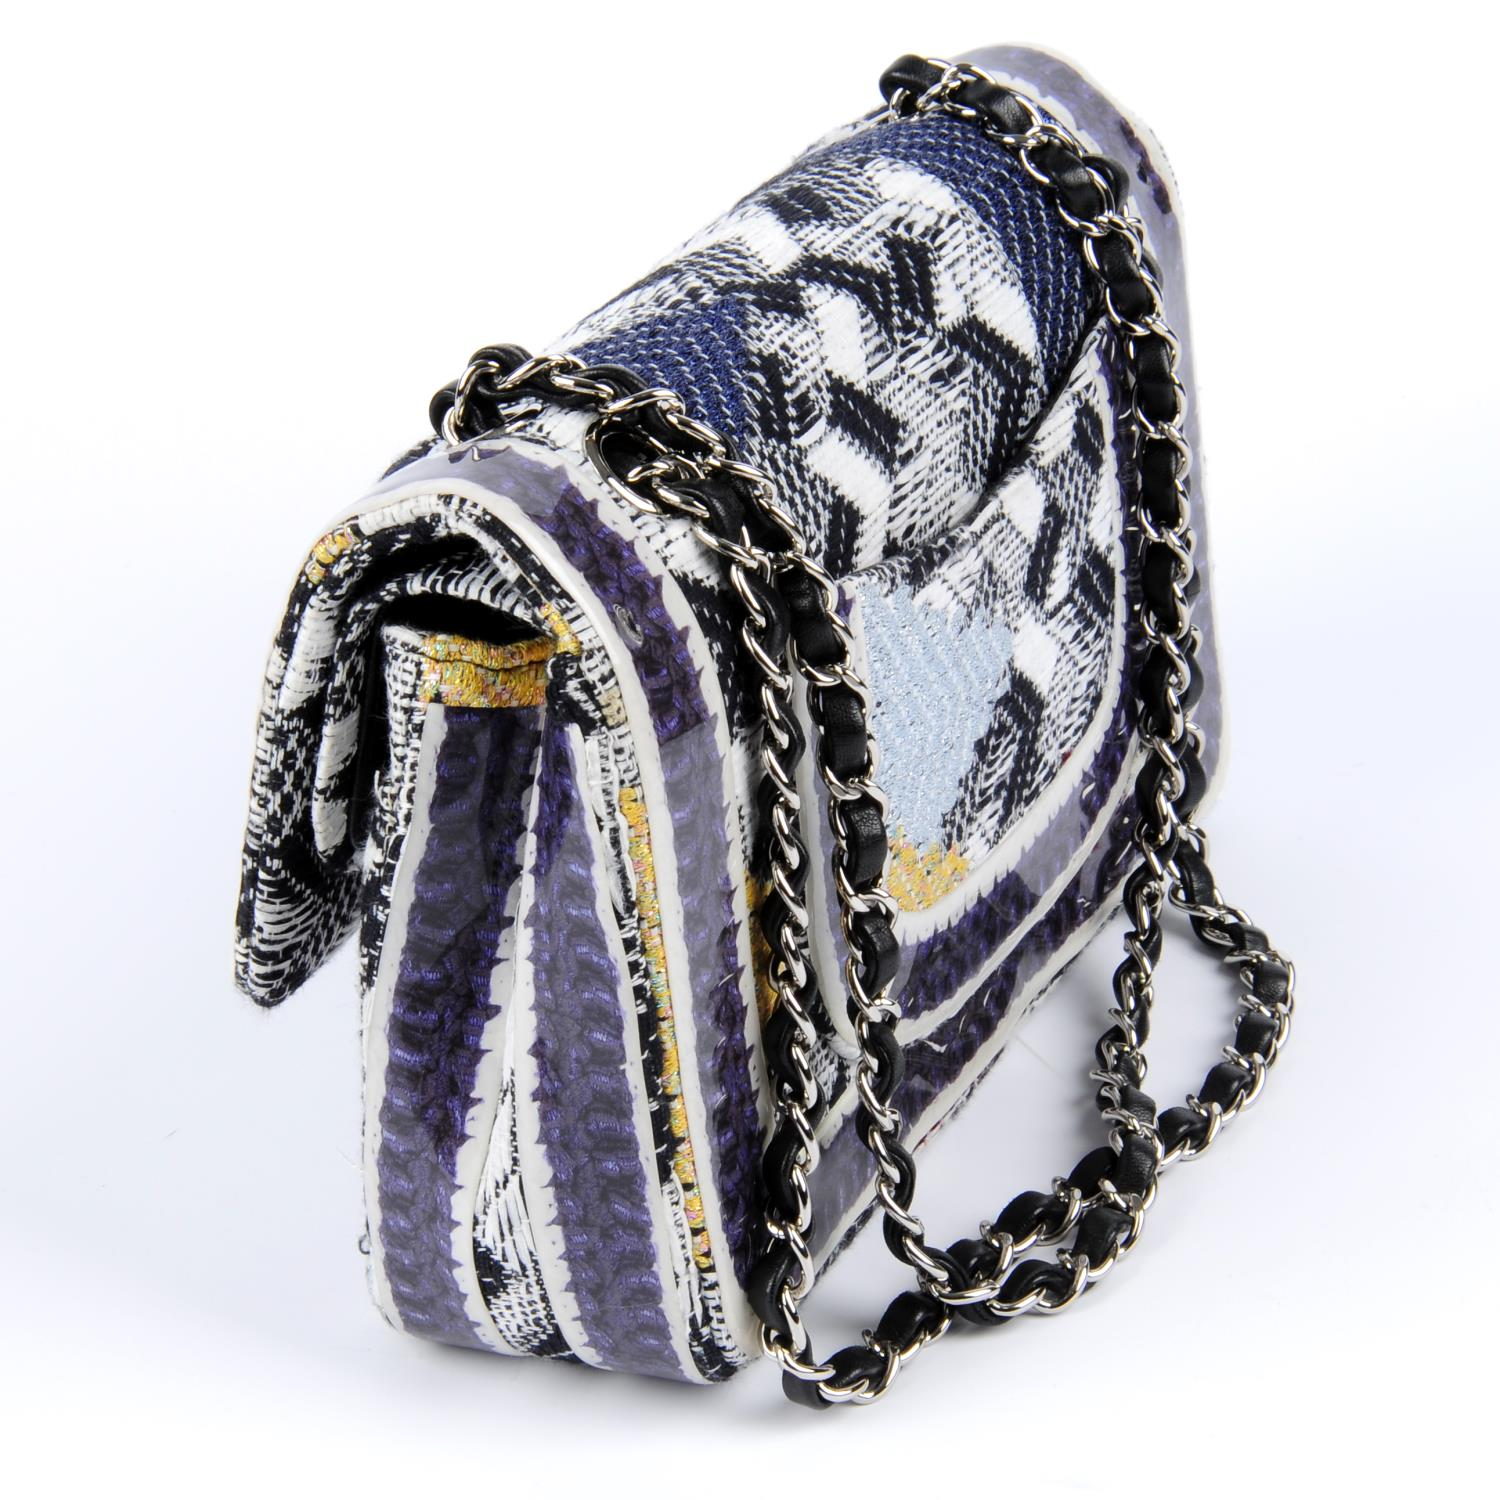 CHANEL - a Silicone-Covered Tweed Double Flap handbag. - Image 3 of 4